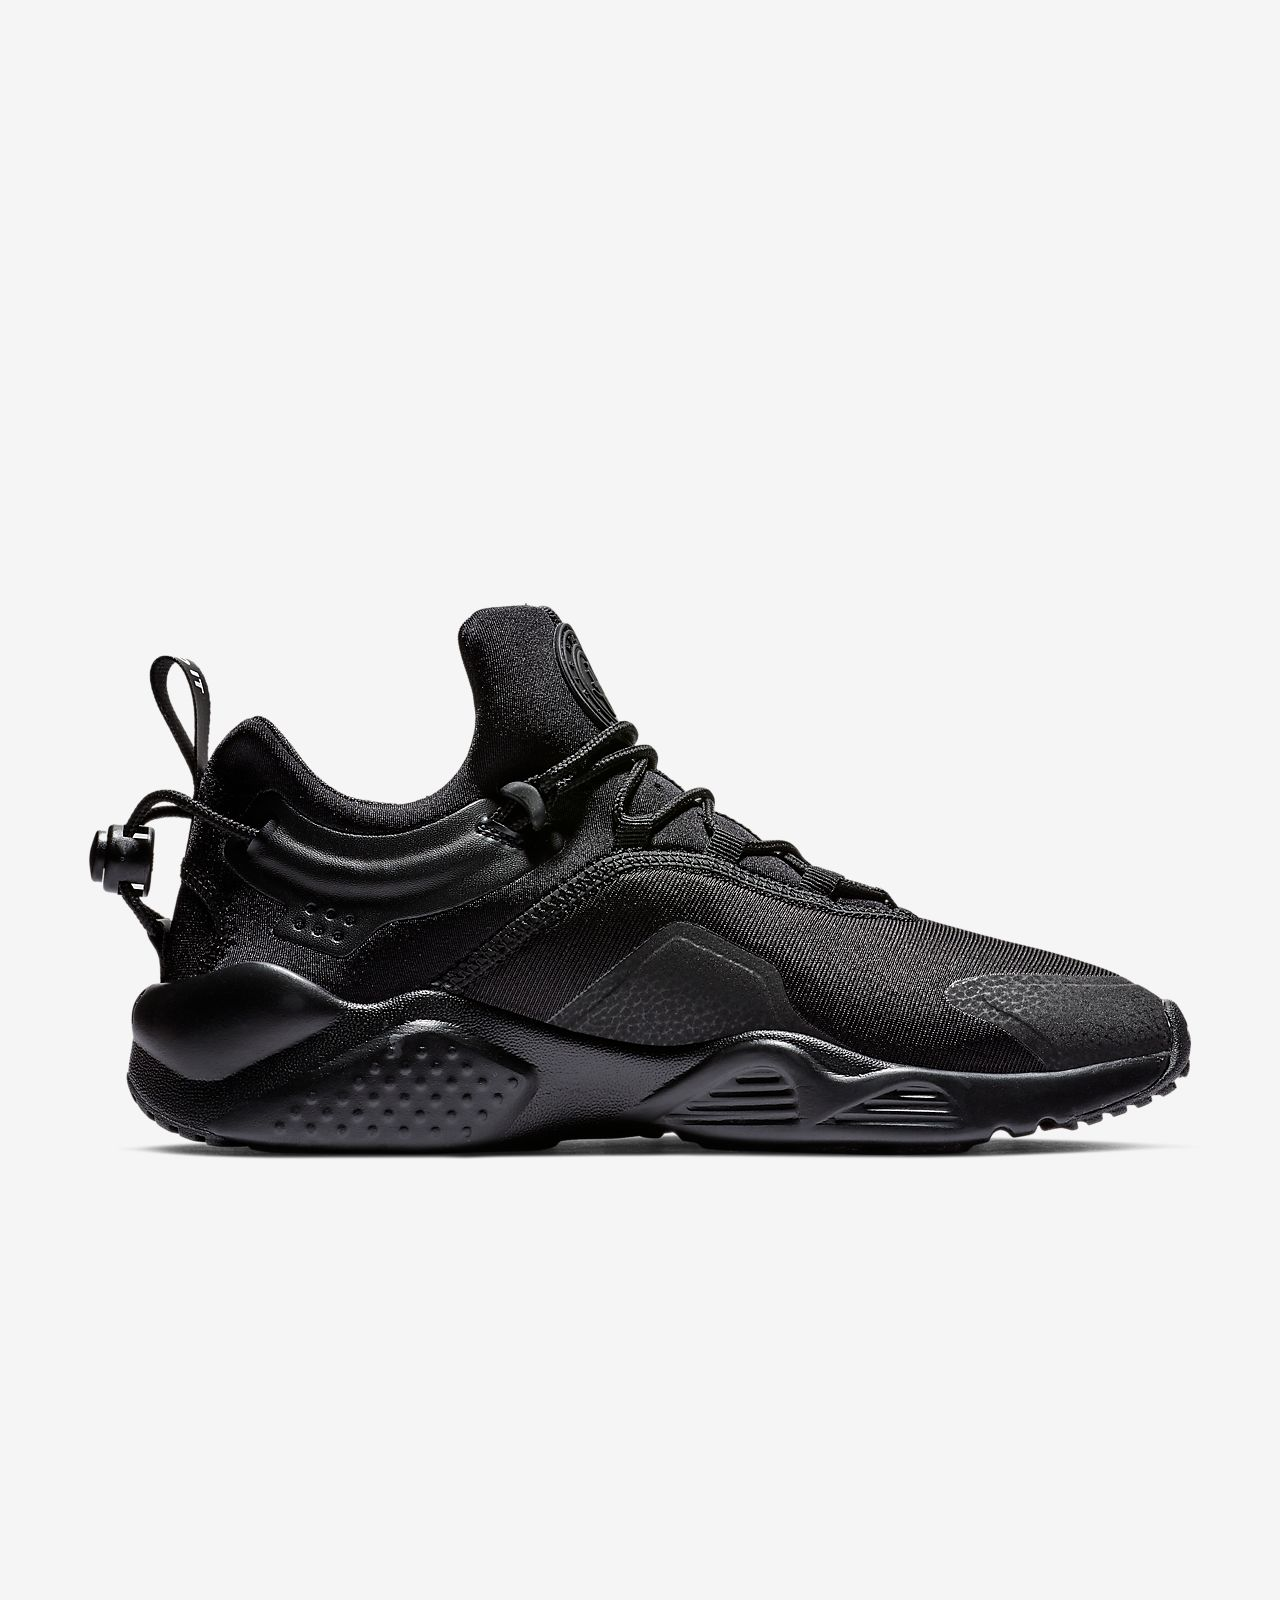 495c68f2ac4 Nike Air Huarache City Move Women s Shoe. Nike.com